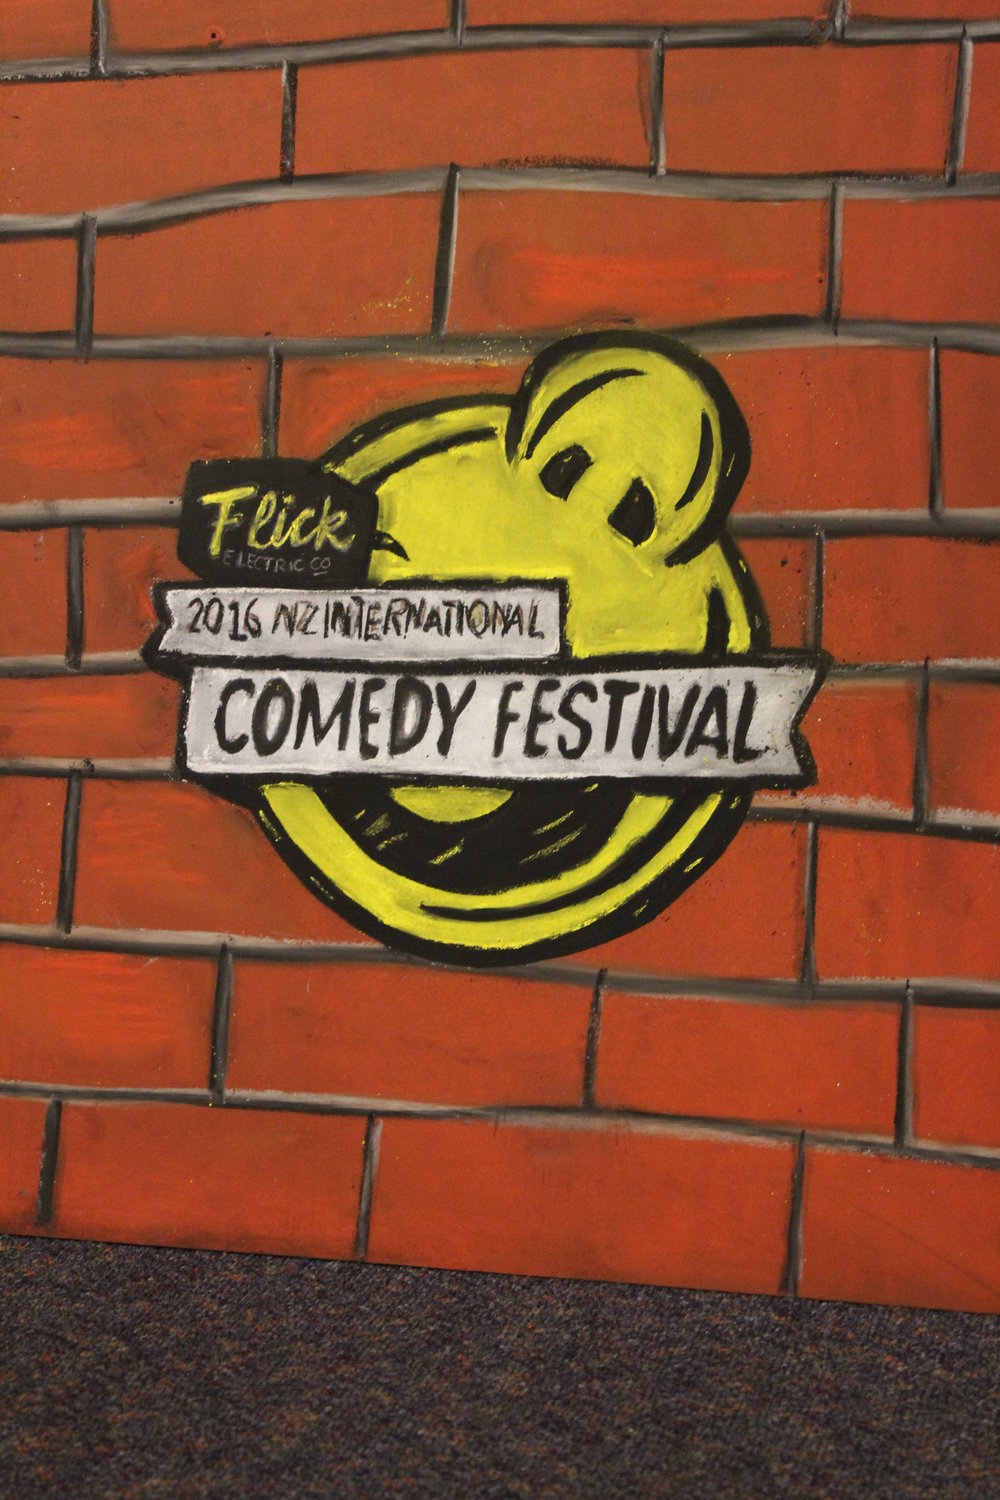 New Zealand International Comedy Festival, 2016